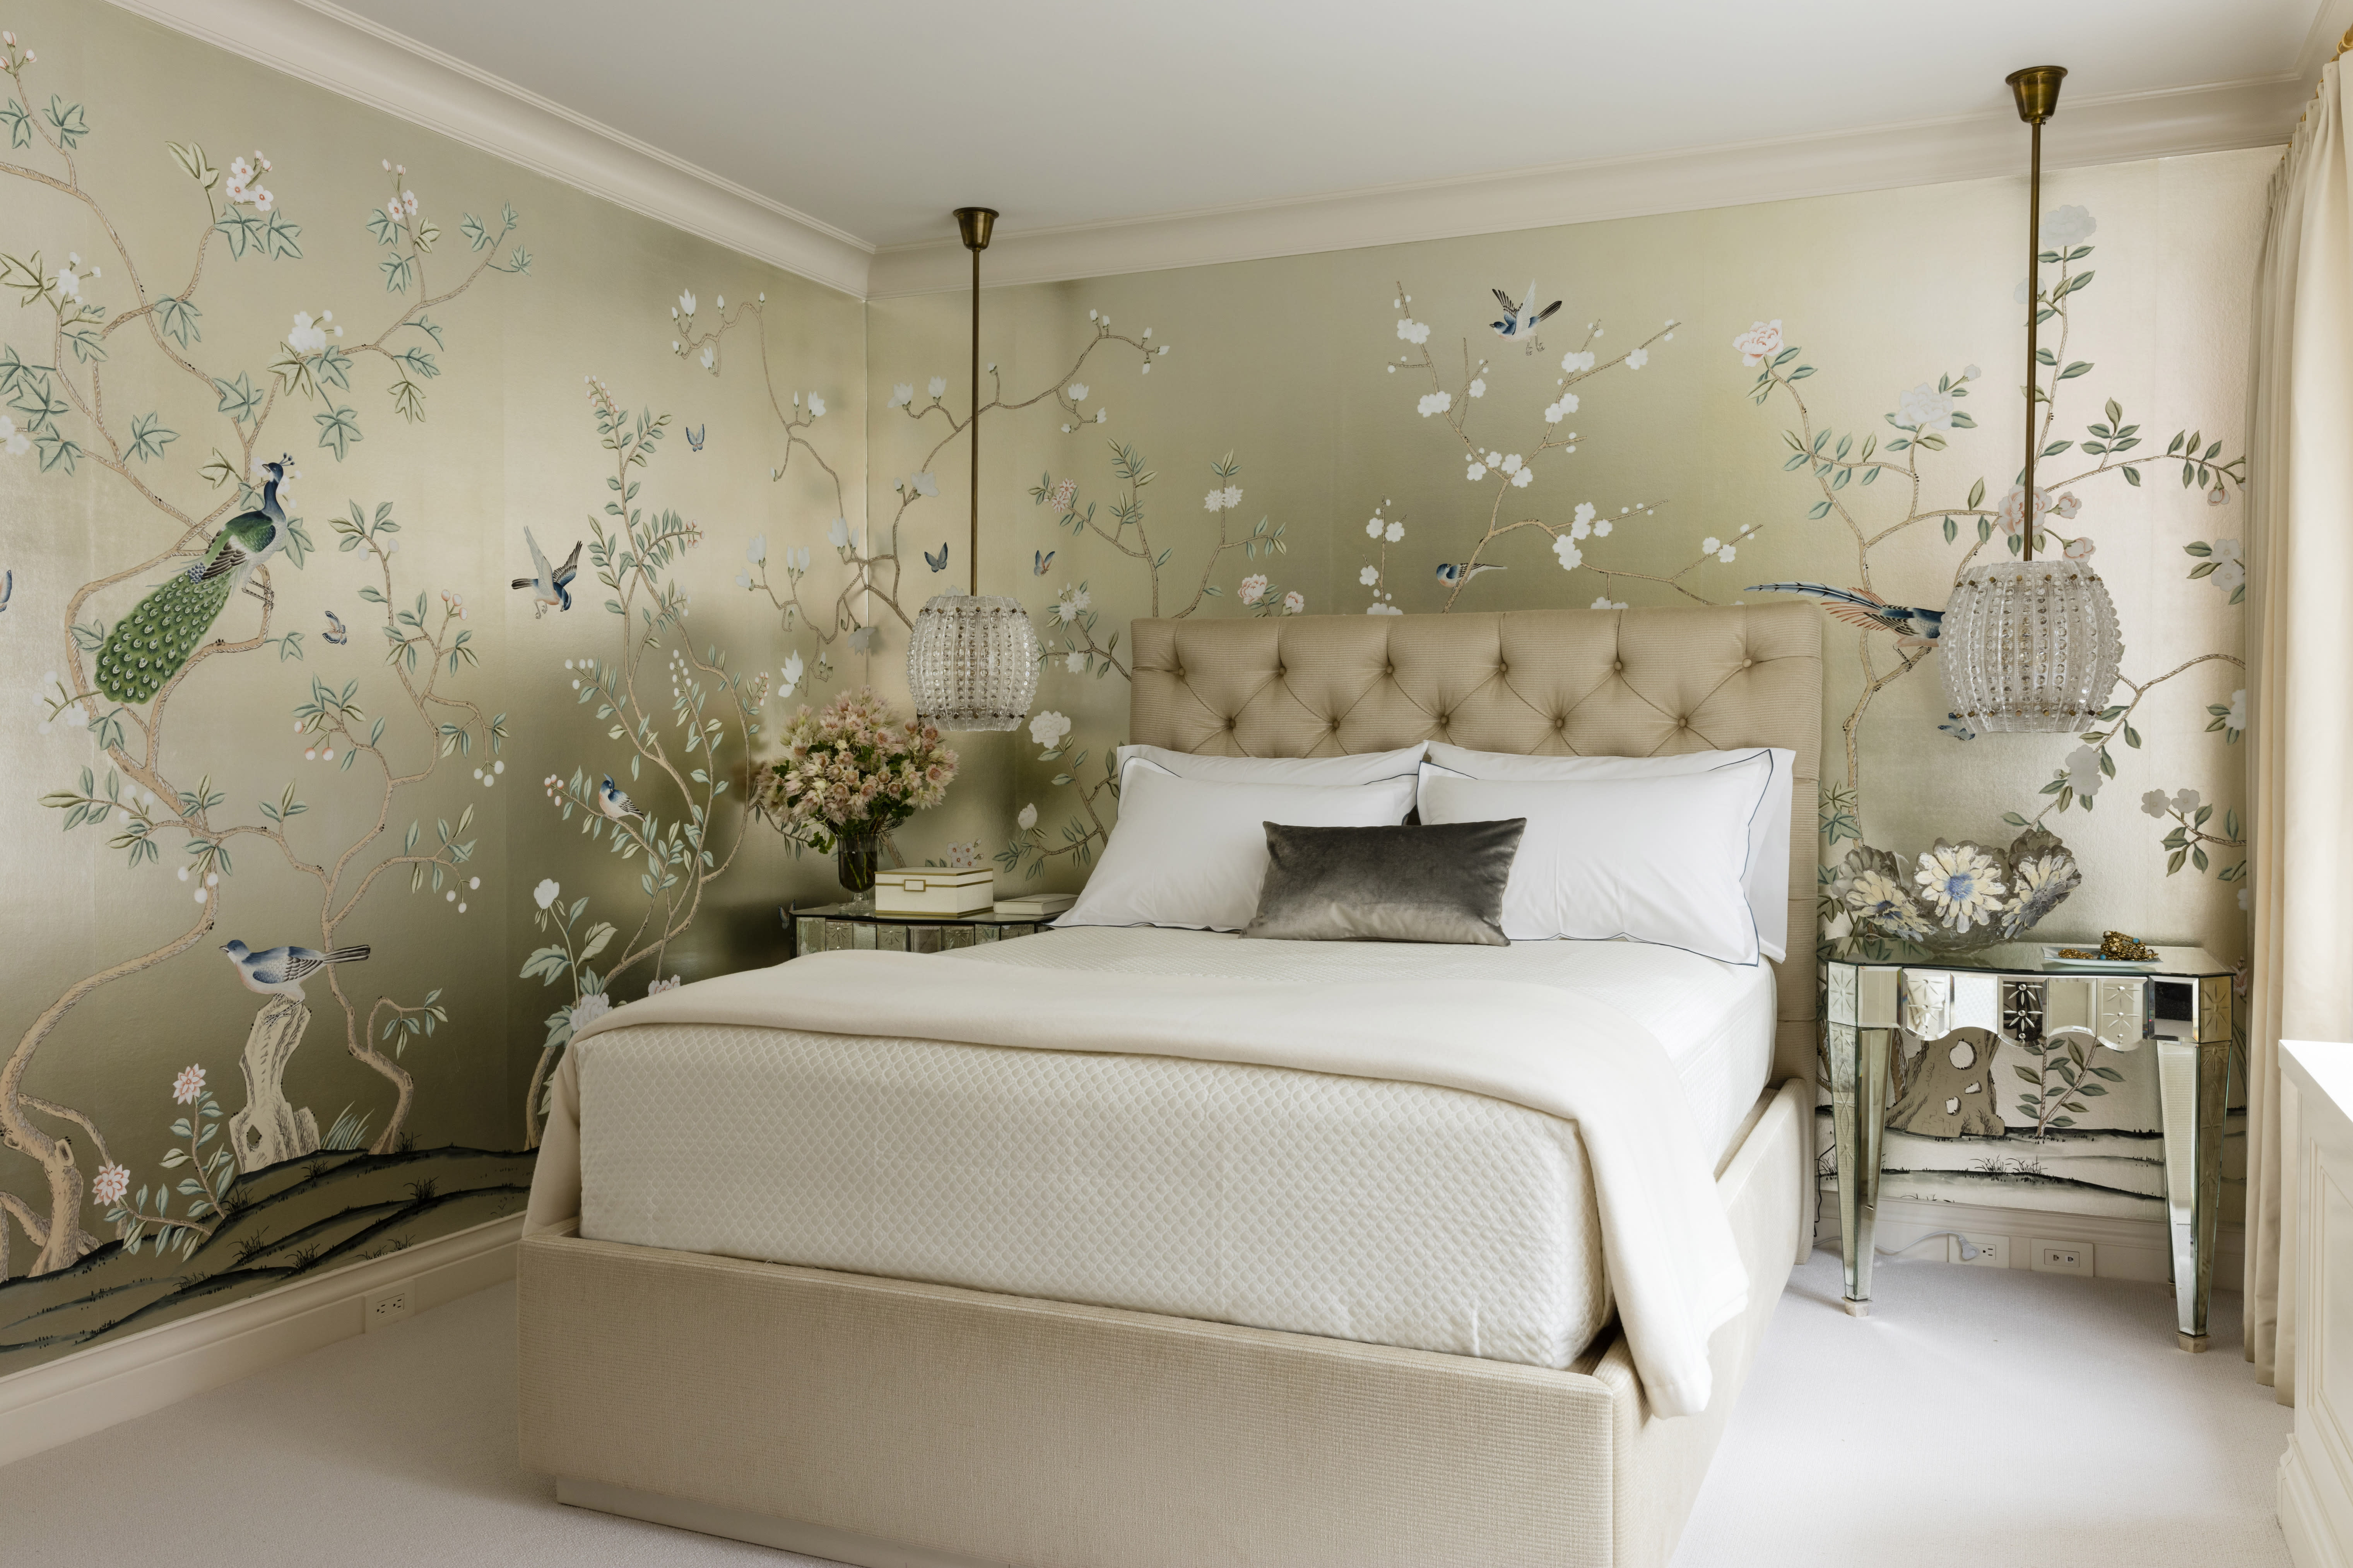 """This undated photo provided by Craig & Company shows a master bedroom that interior designer Joan Craig designed for a New York client. Craig used a hand-painted Chinoiserie gilded silk from de Gournay. """"Wallpaper is having its day,"""" says Craig. """"We can't get enough of it and neither can our clients."""" Antoine Bootz/Craig & Company via AP)"""